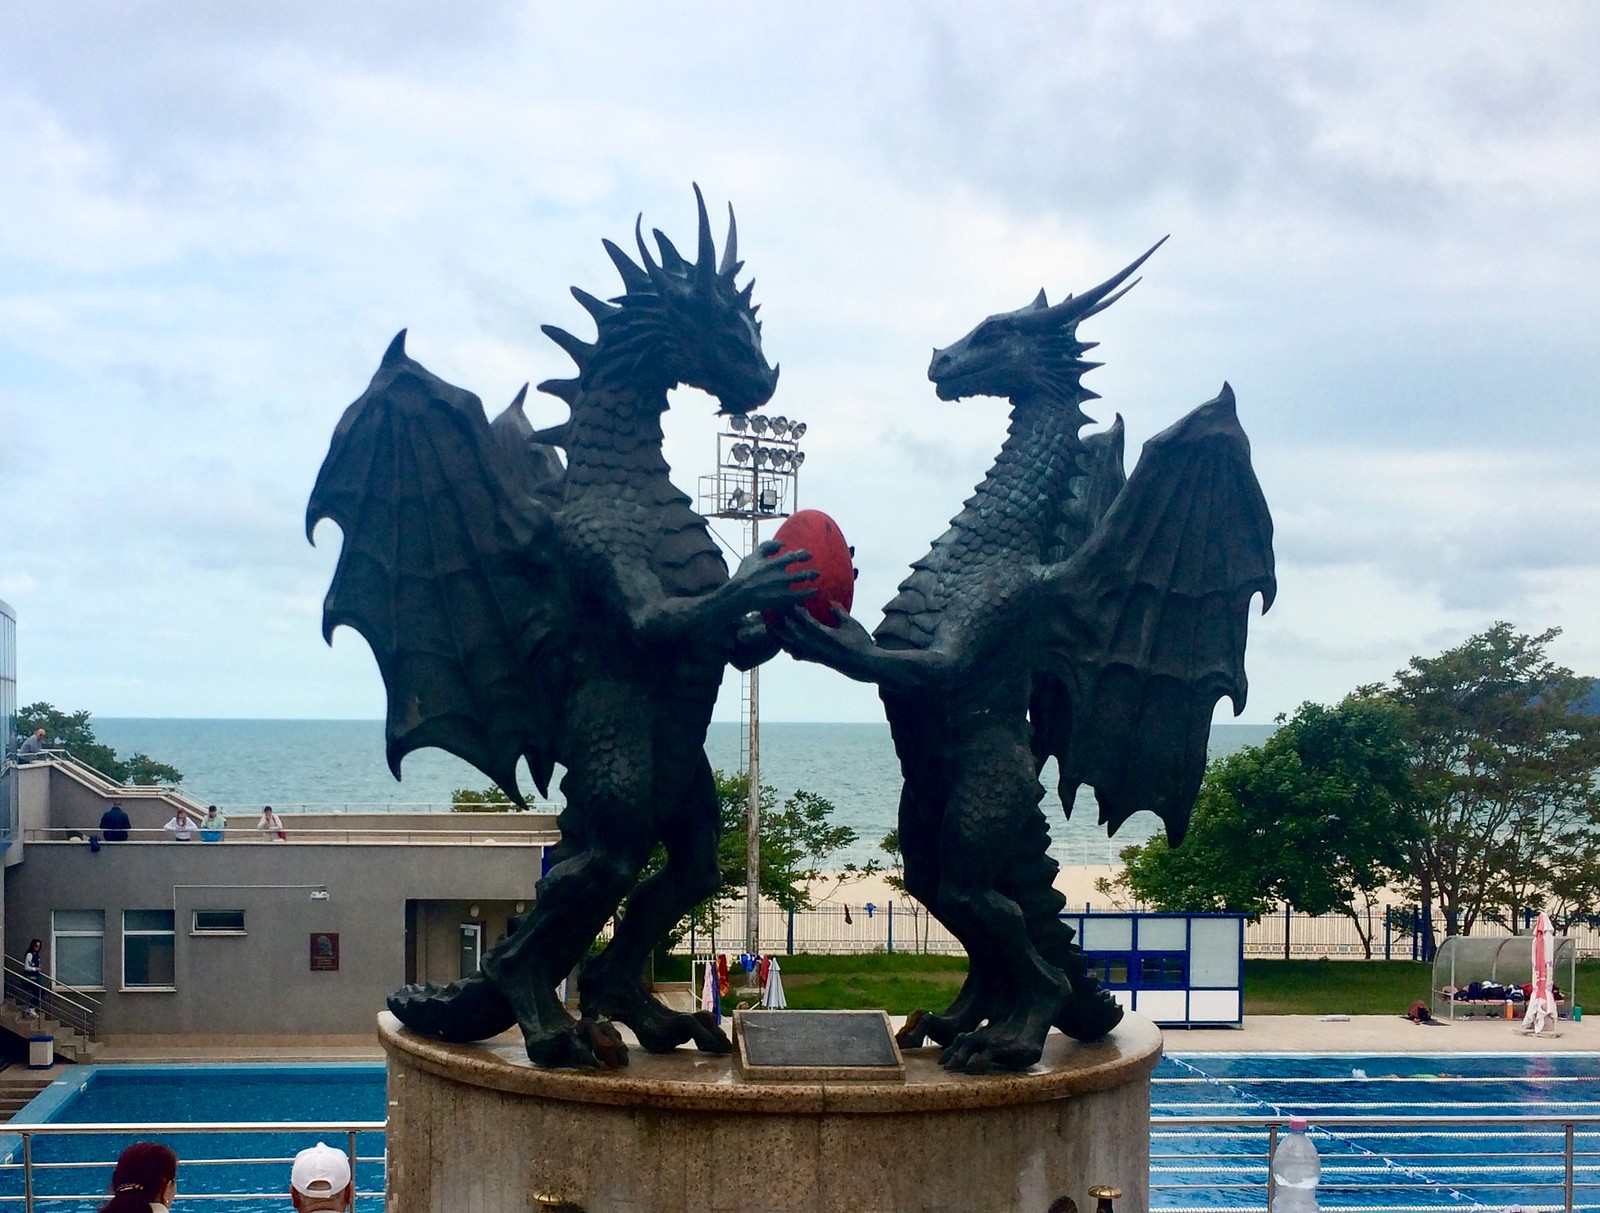 201705 - Balkans - Dragons at Natatorium - 18 of 66 - Varna - Varna, May 25, 2017